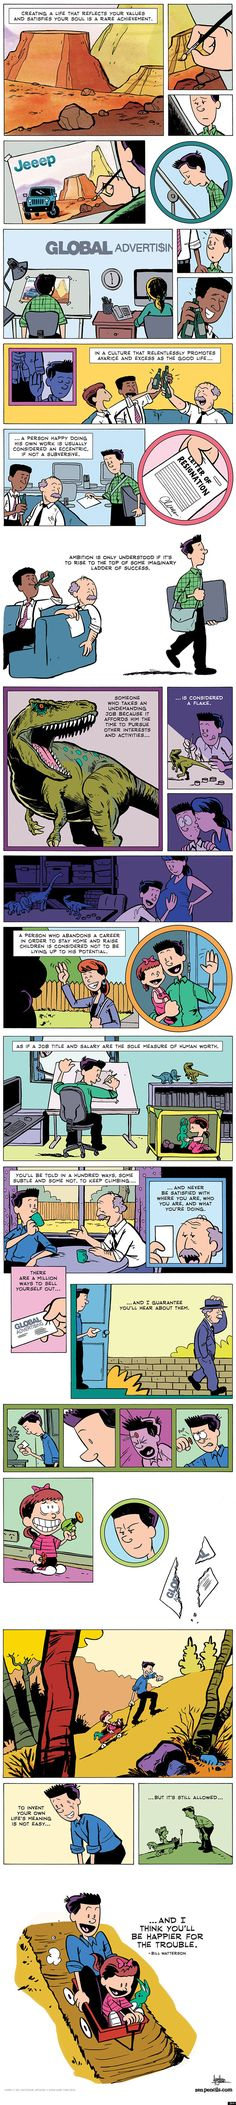 Illustrated Gavin Aung Than, from Zen Pencils. A quote from Bill Watterson's commencement  speech at Kenyon College in 1995.